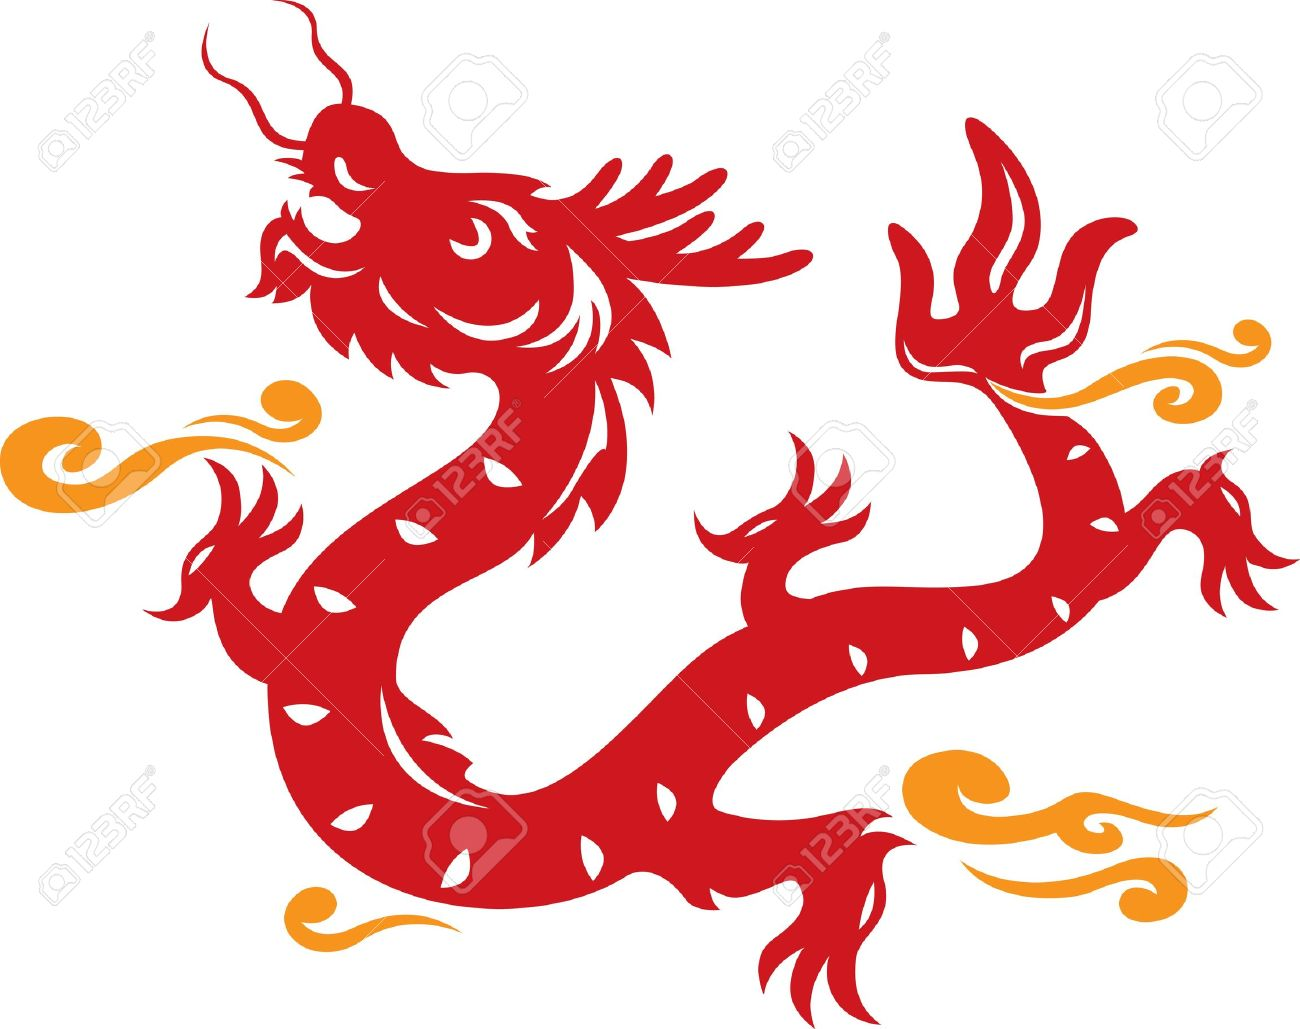 Chinese Dragon clipart #3